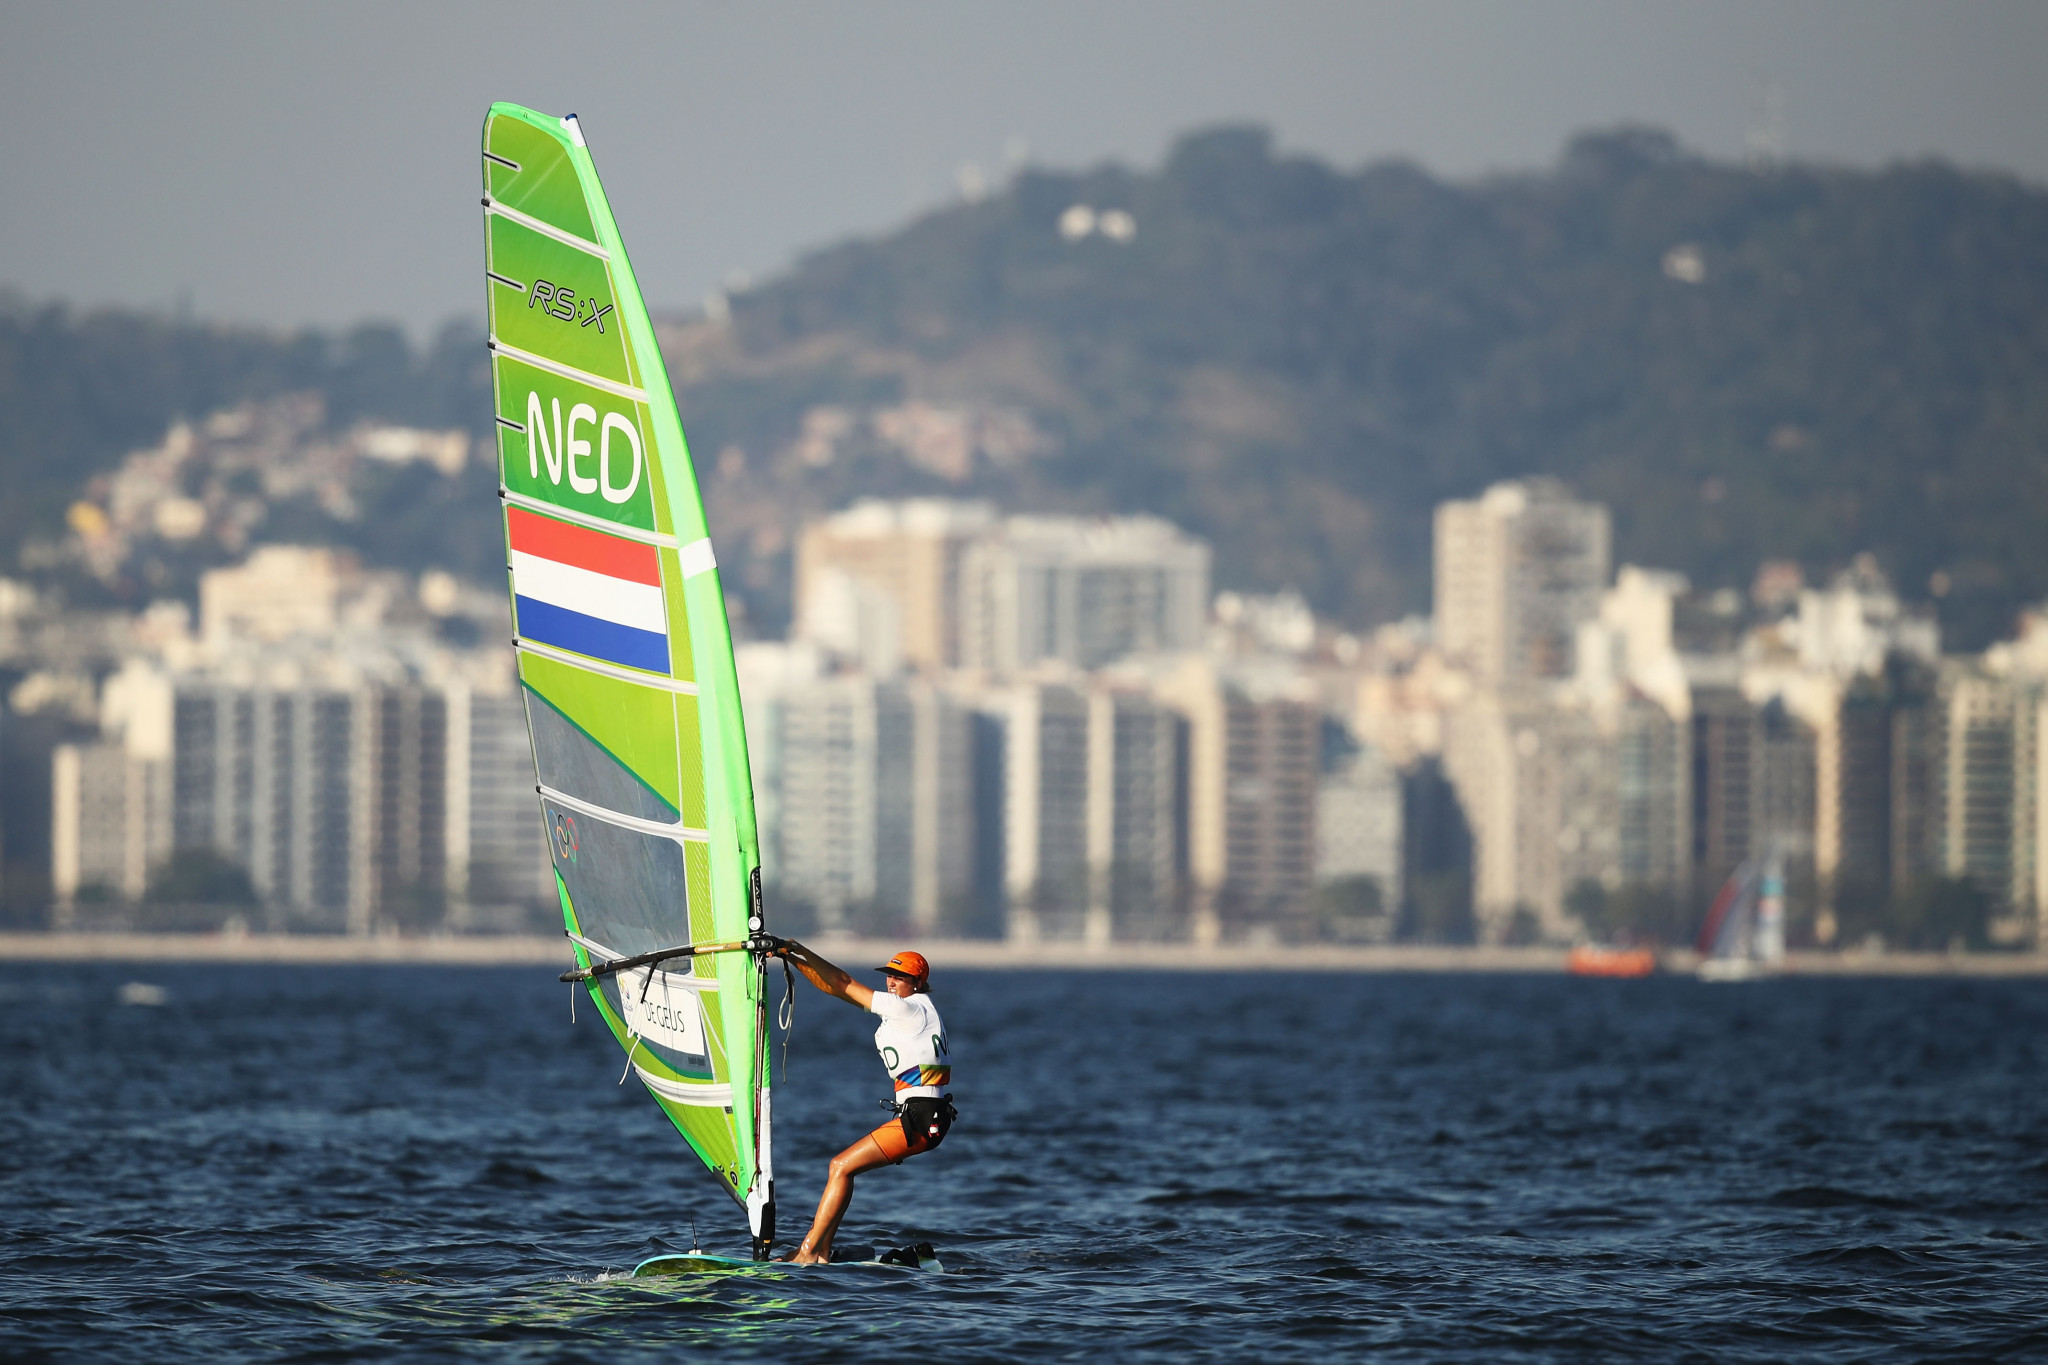 De Geus makes impressive start to title defence at RS:X World Championships